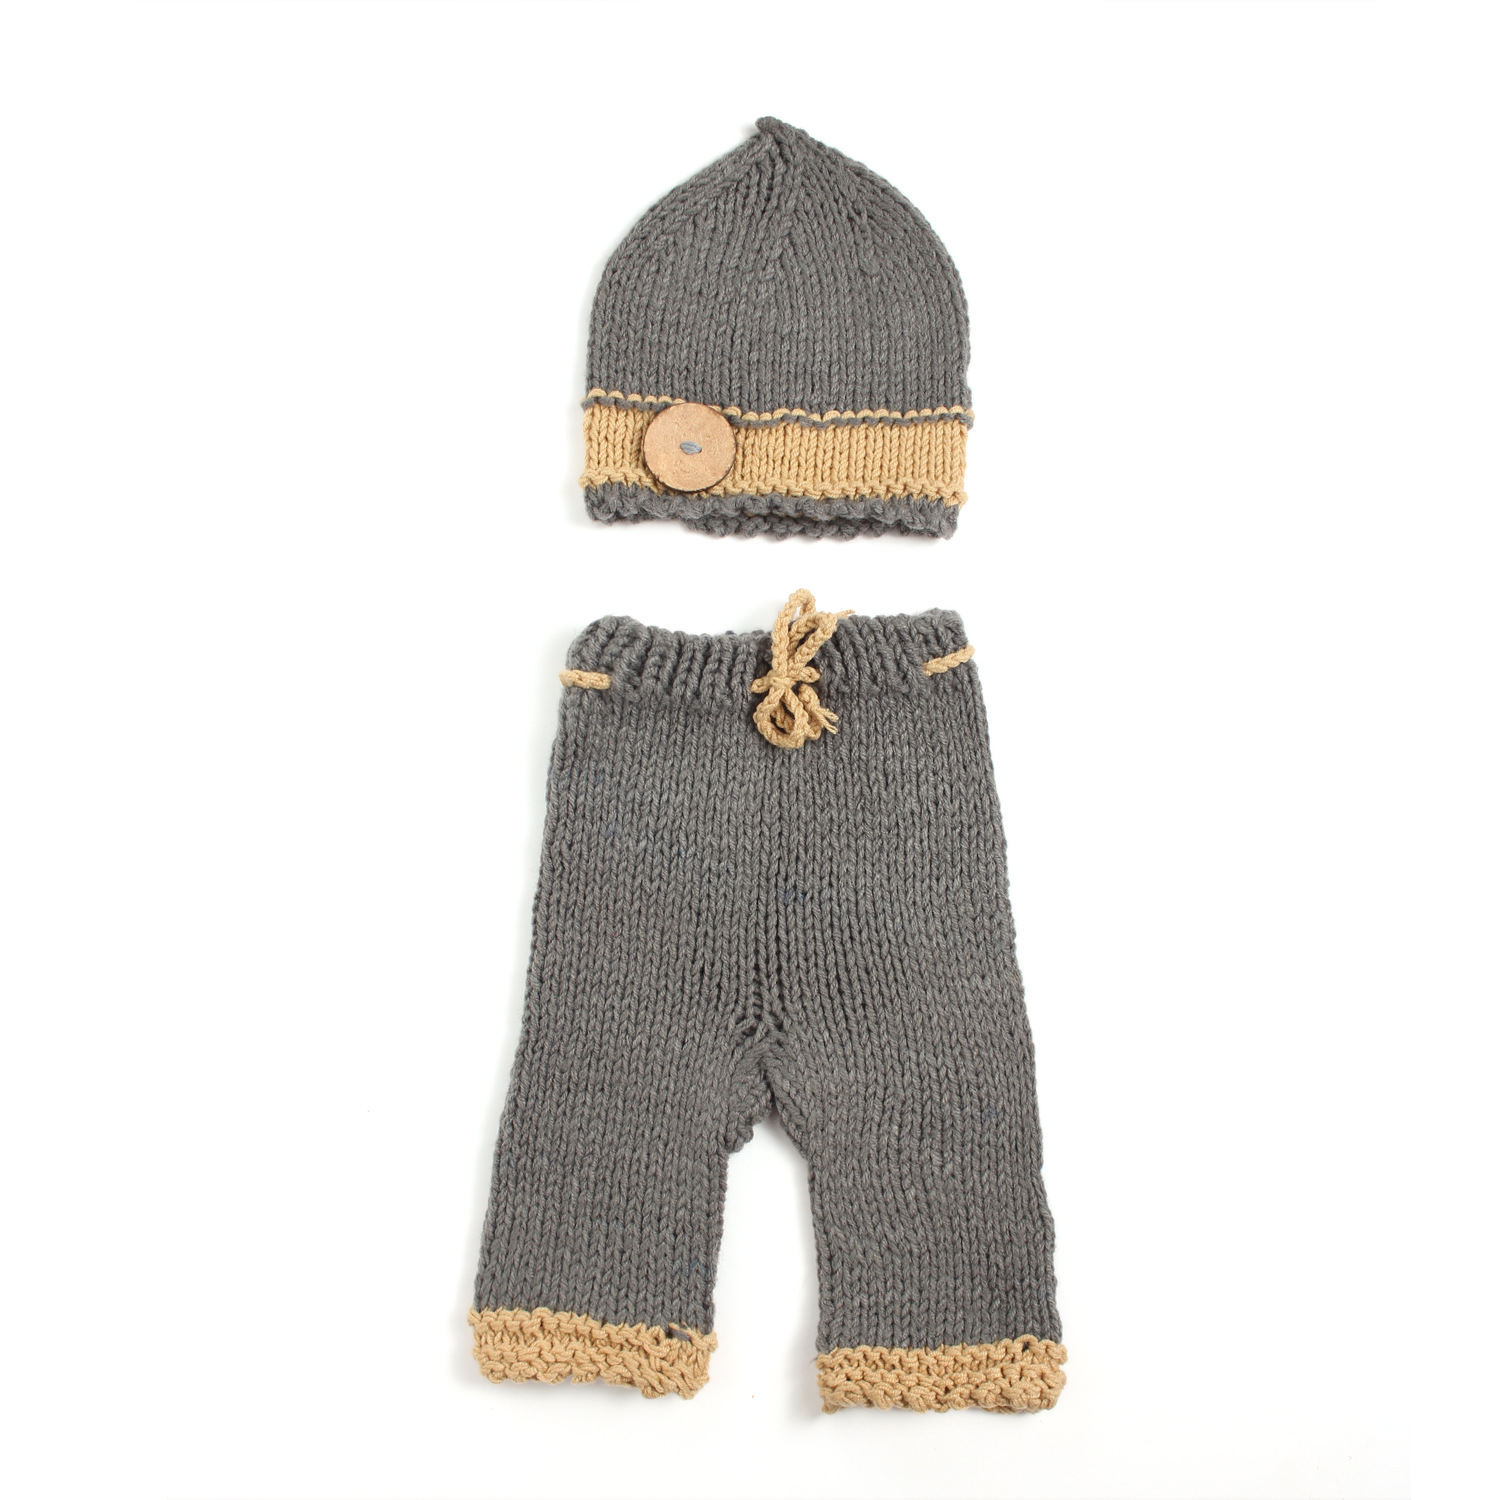 knitted baby knitted hat cool boy baby hats cap